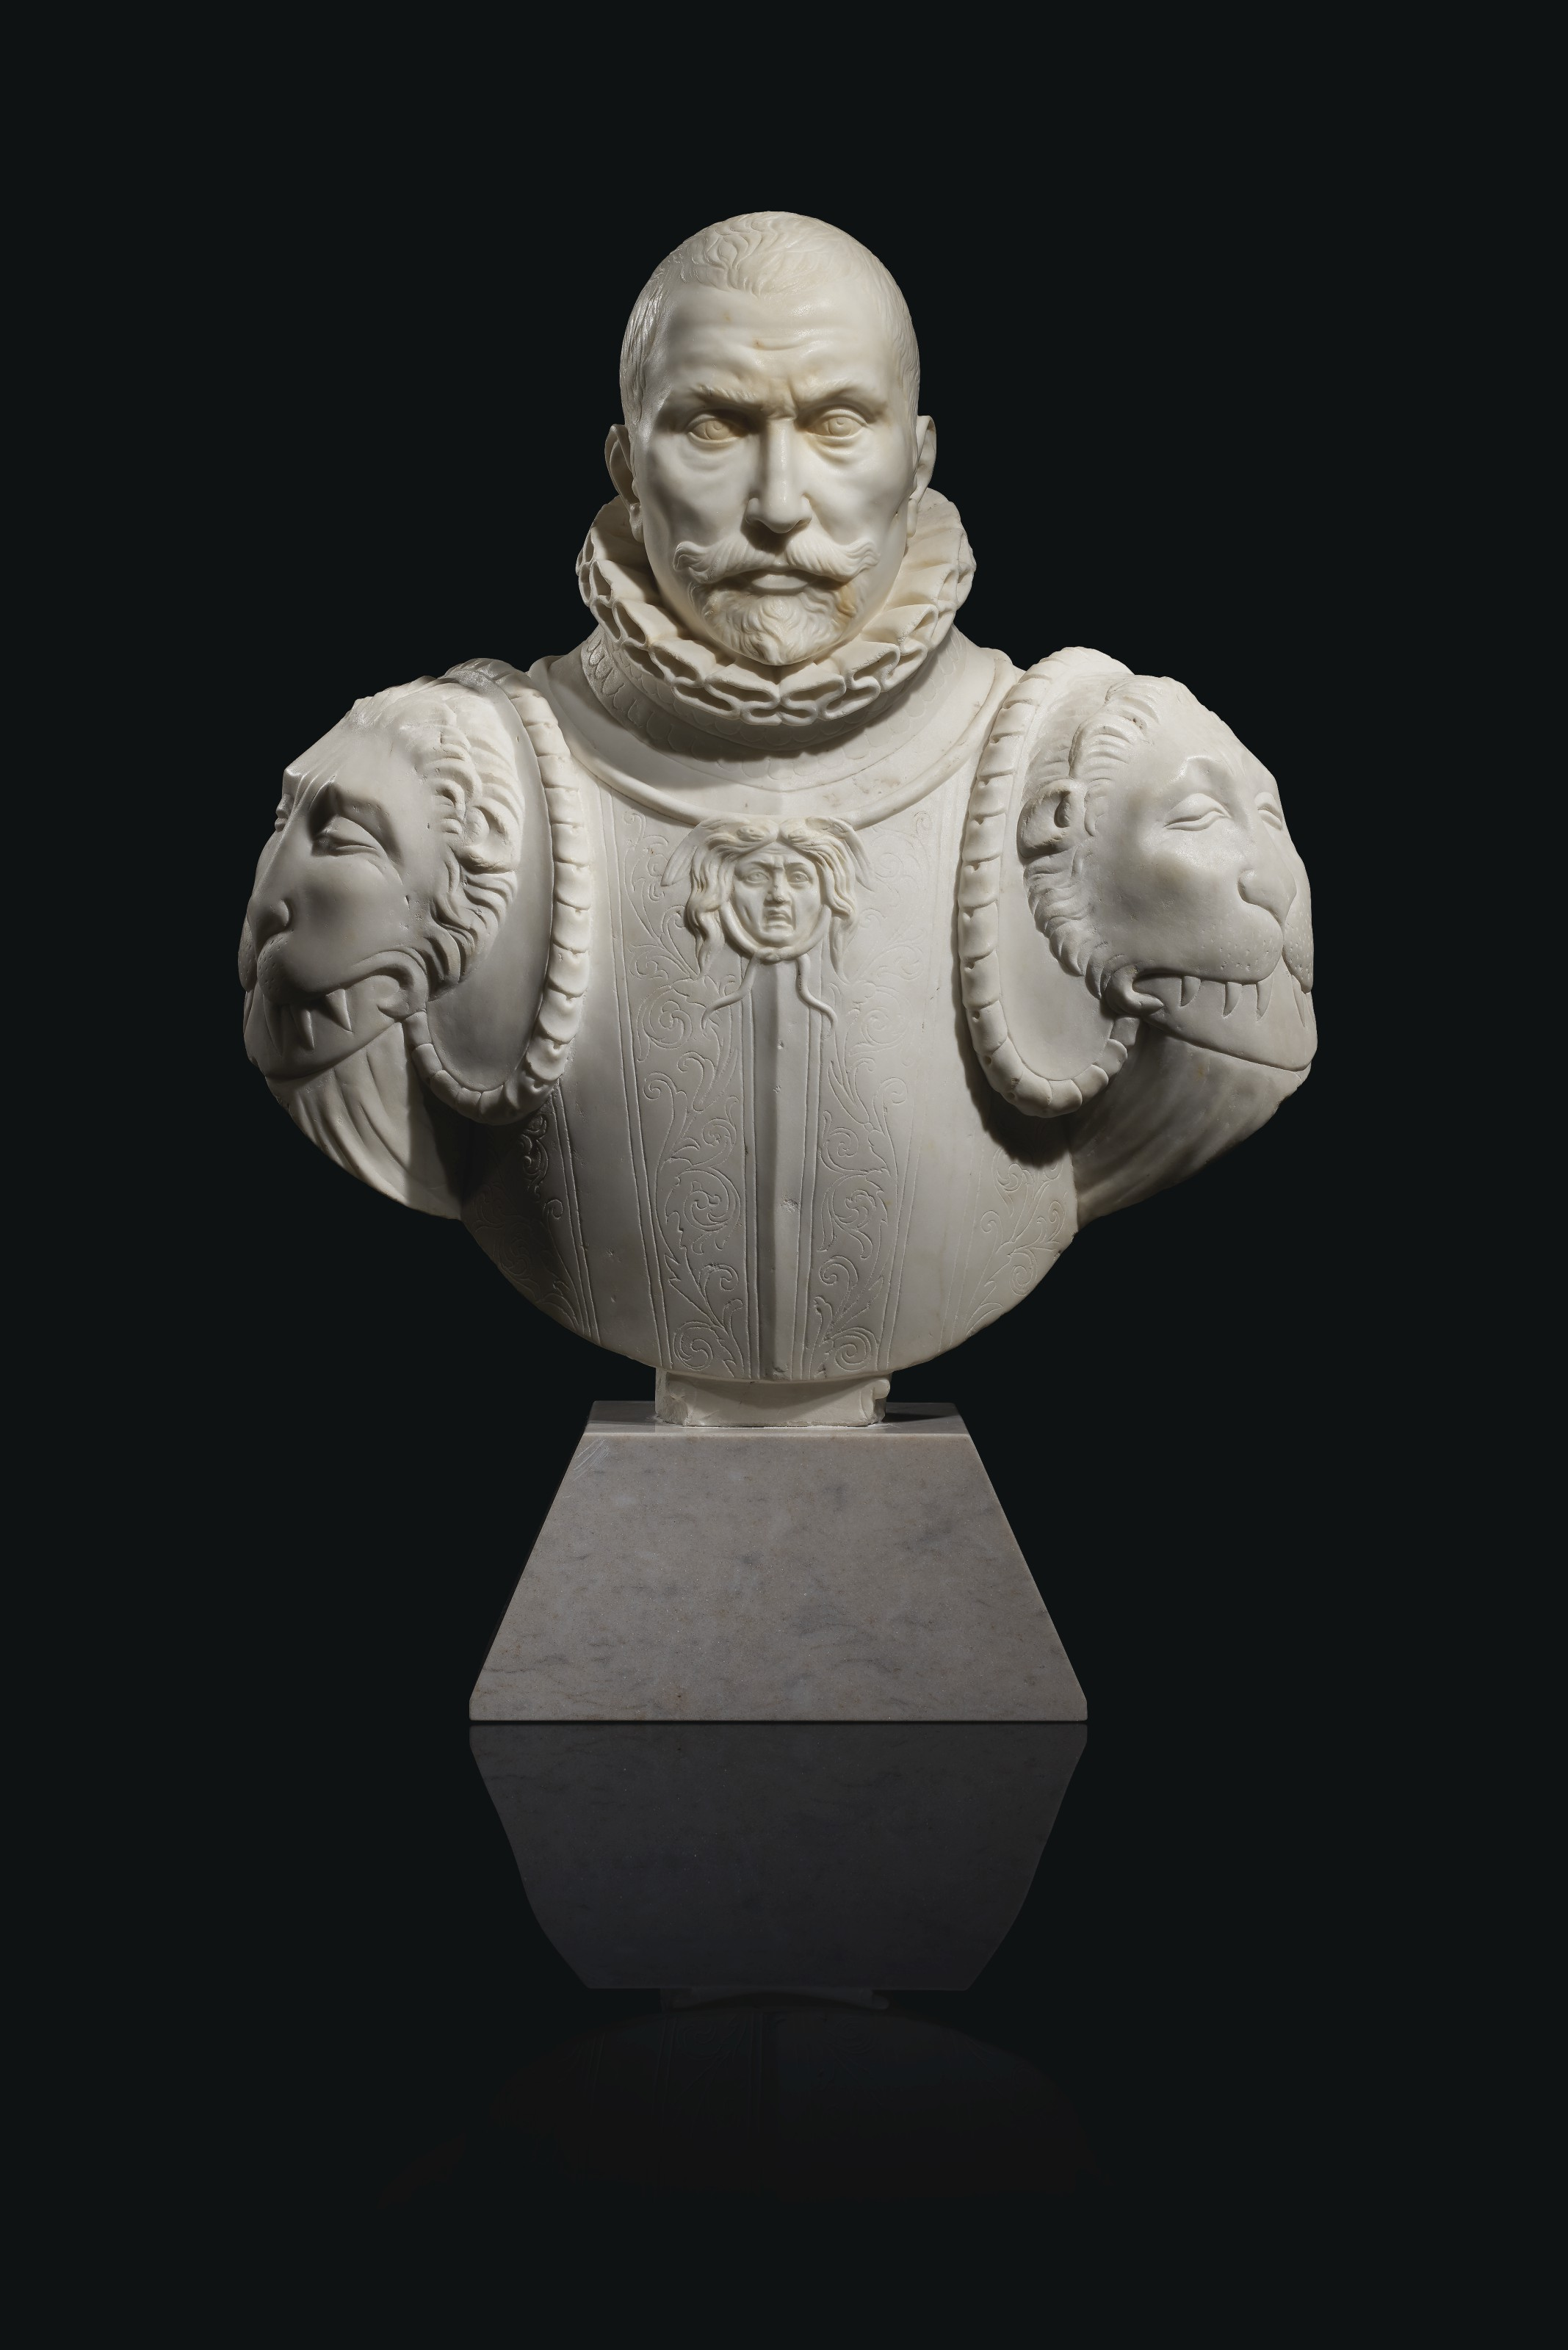 A WHITE MARBLE BUST OF A GENTLEMAN IN ARMOR